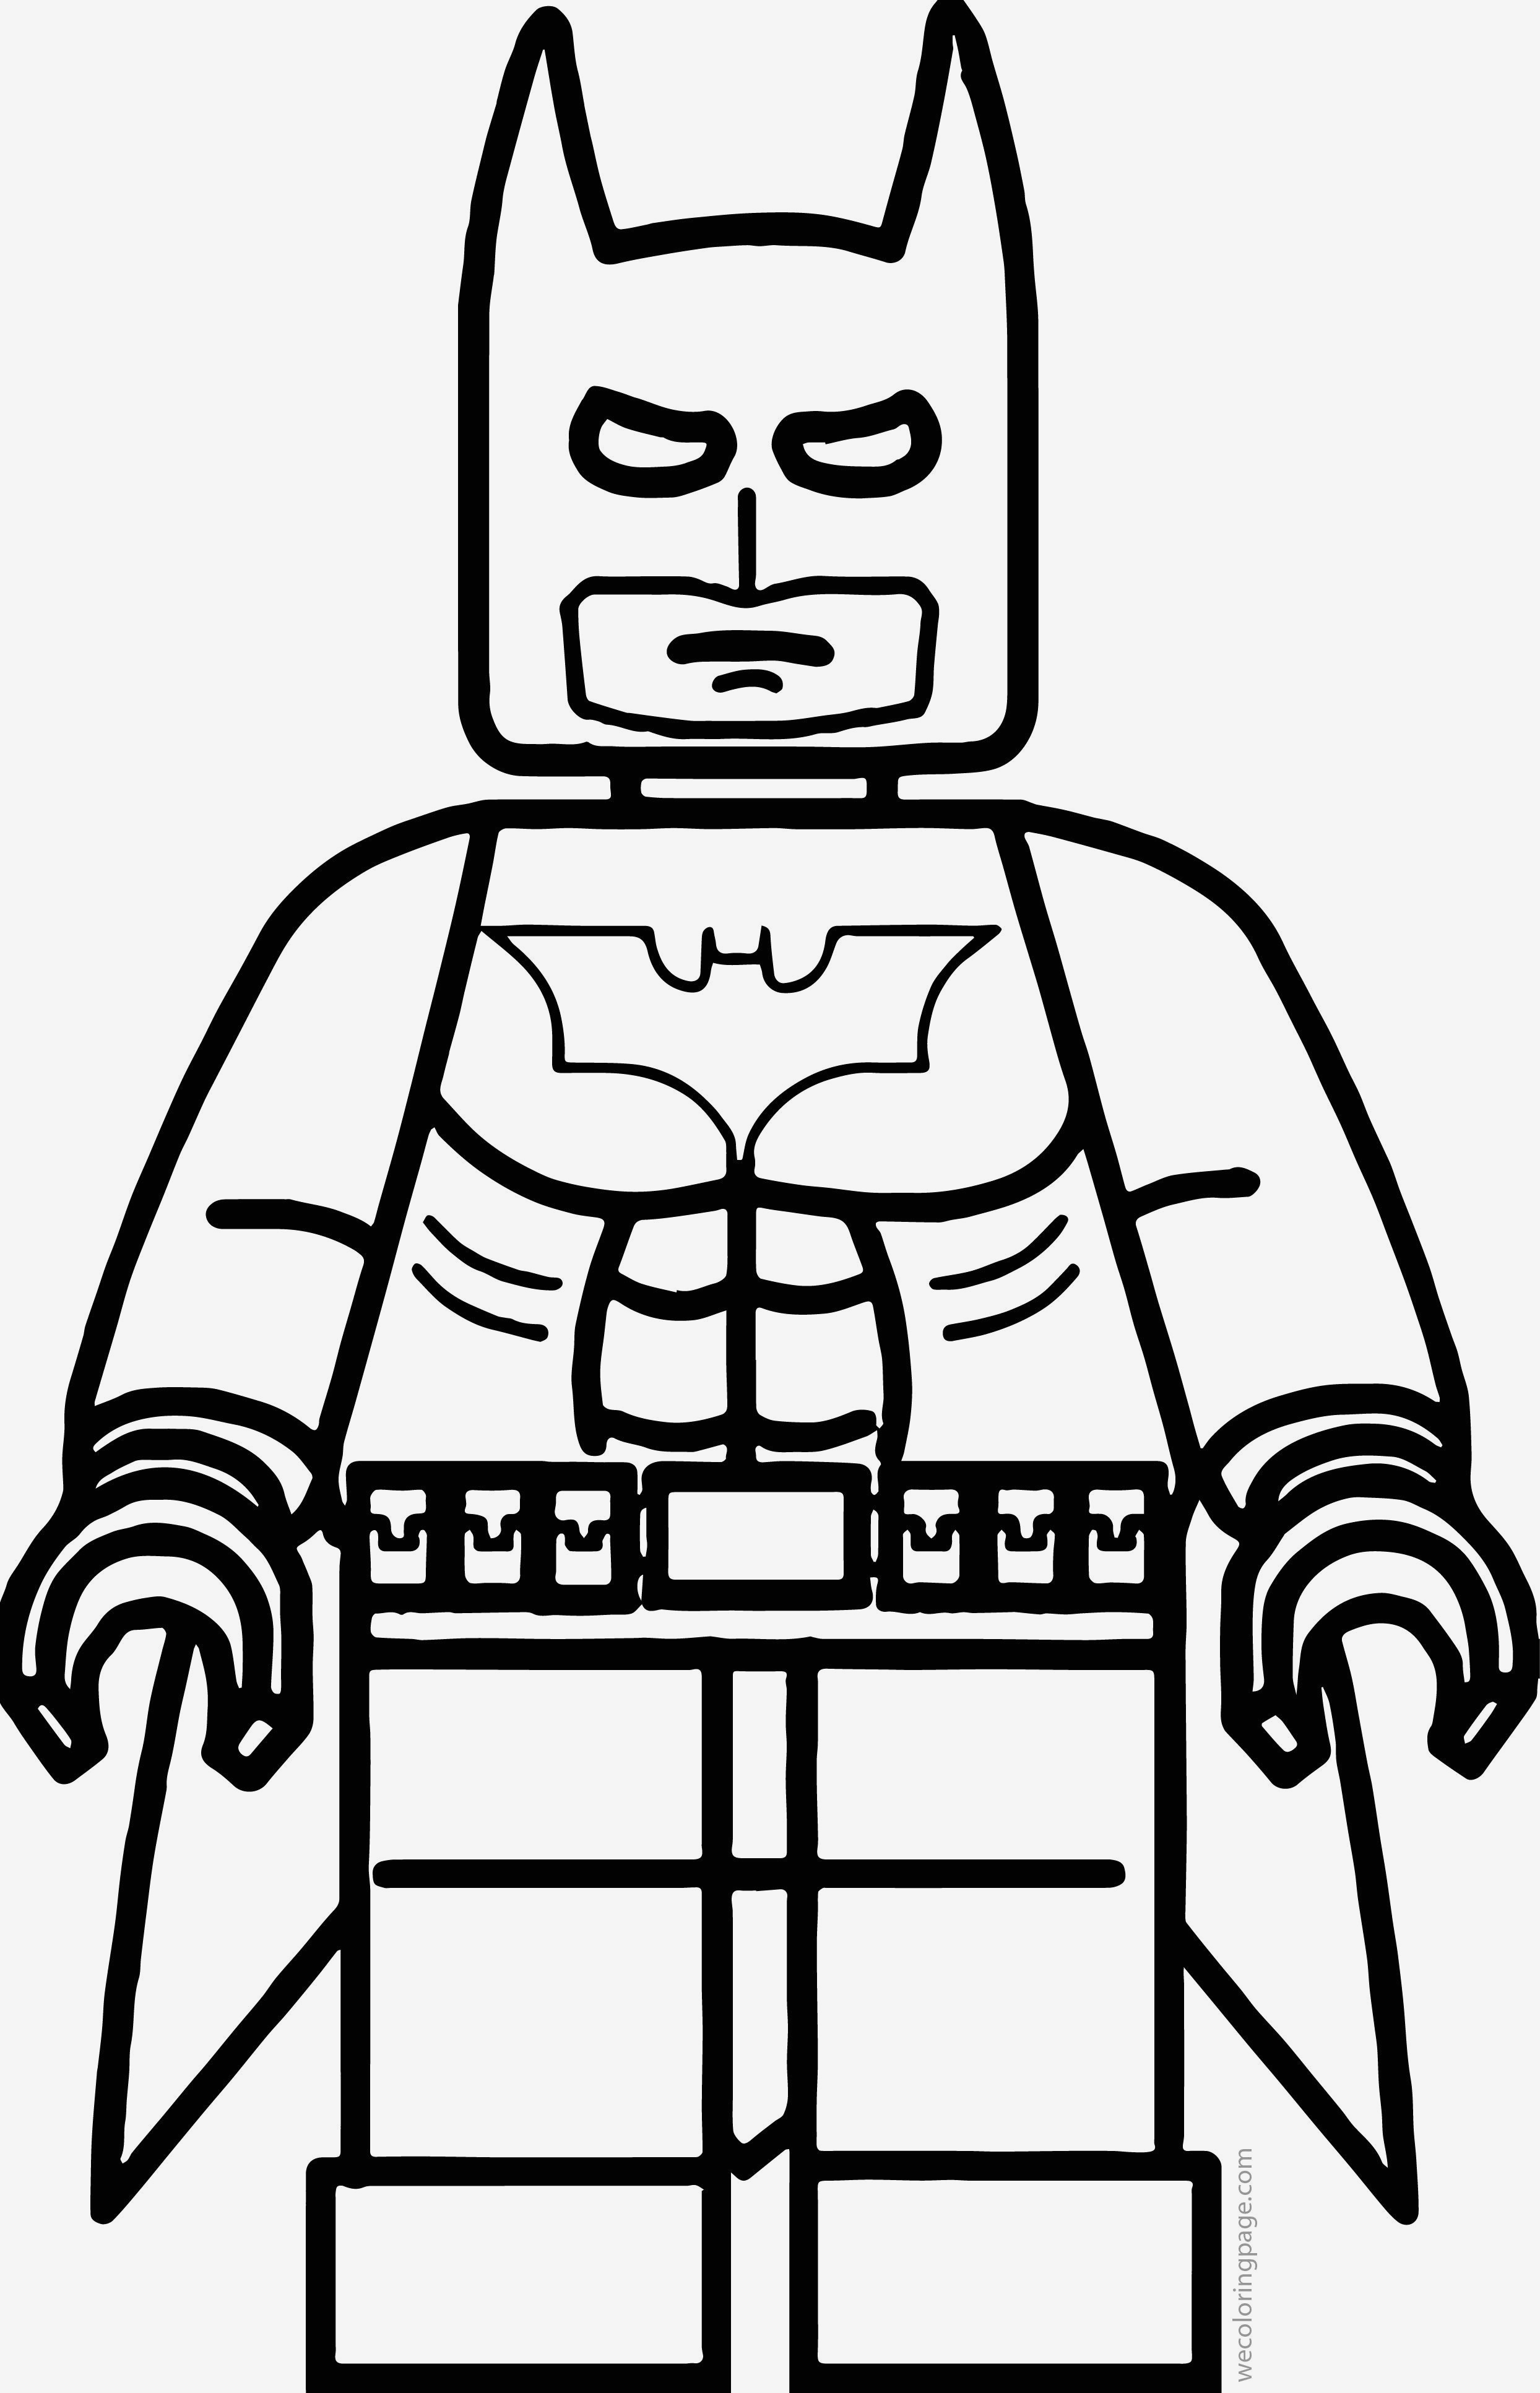 Lego Batman Drawing | Free download on ClipArtMag